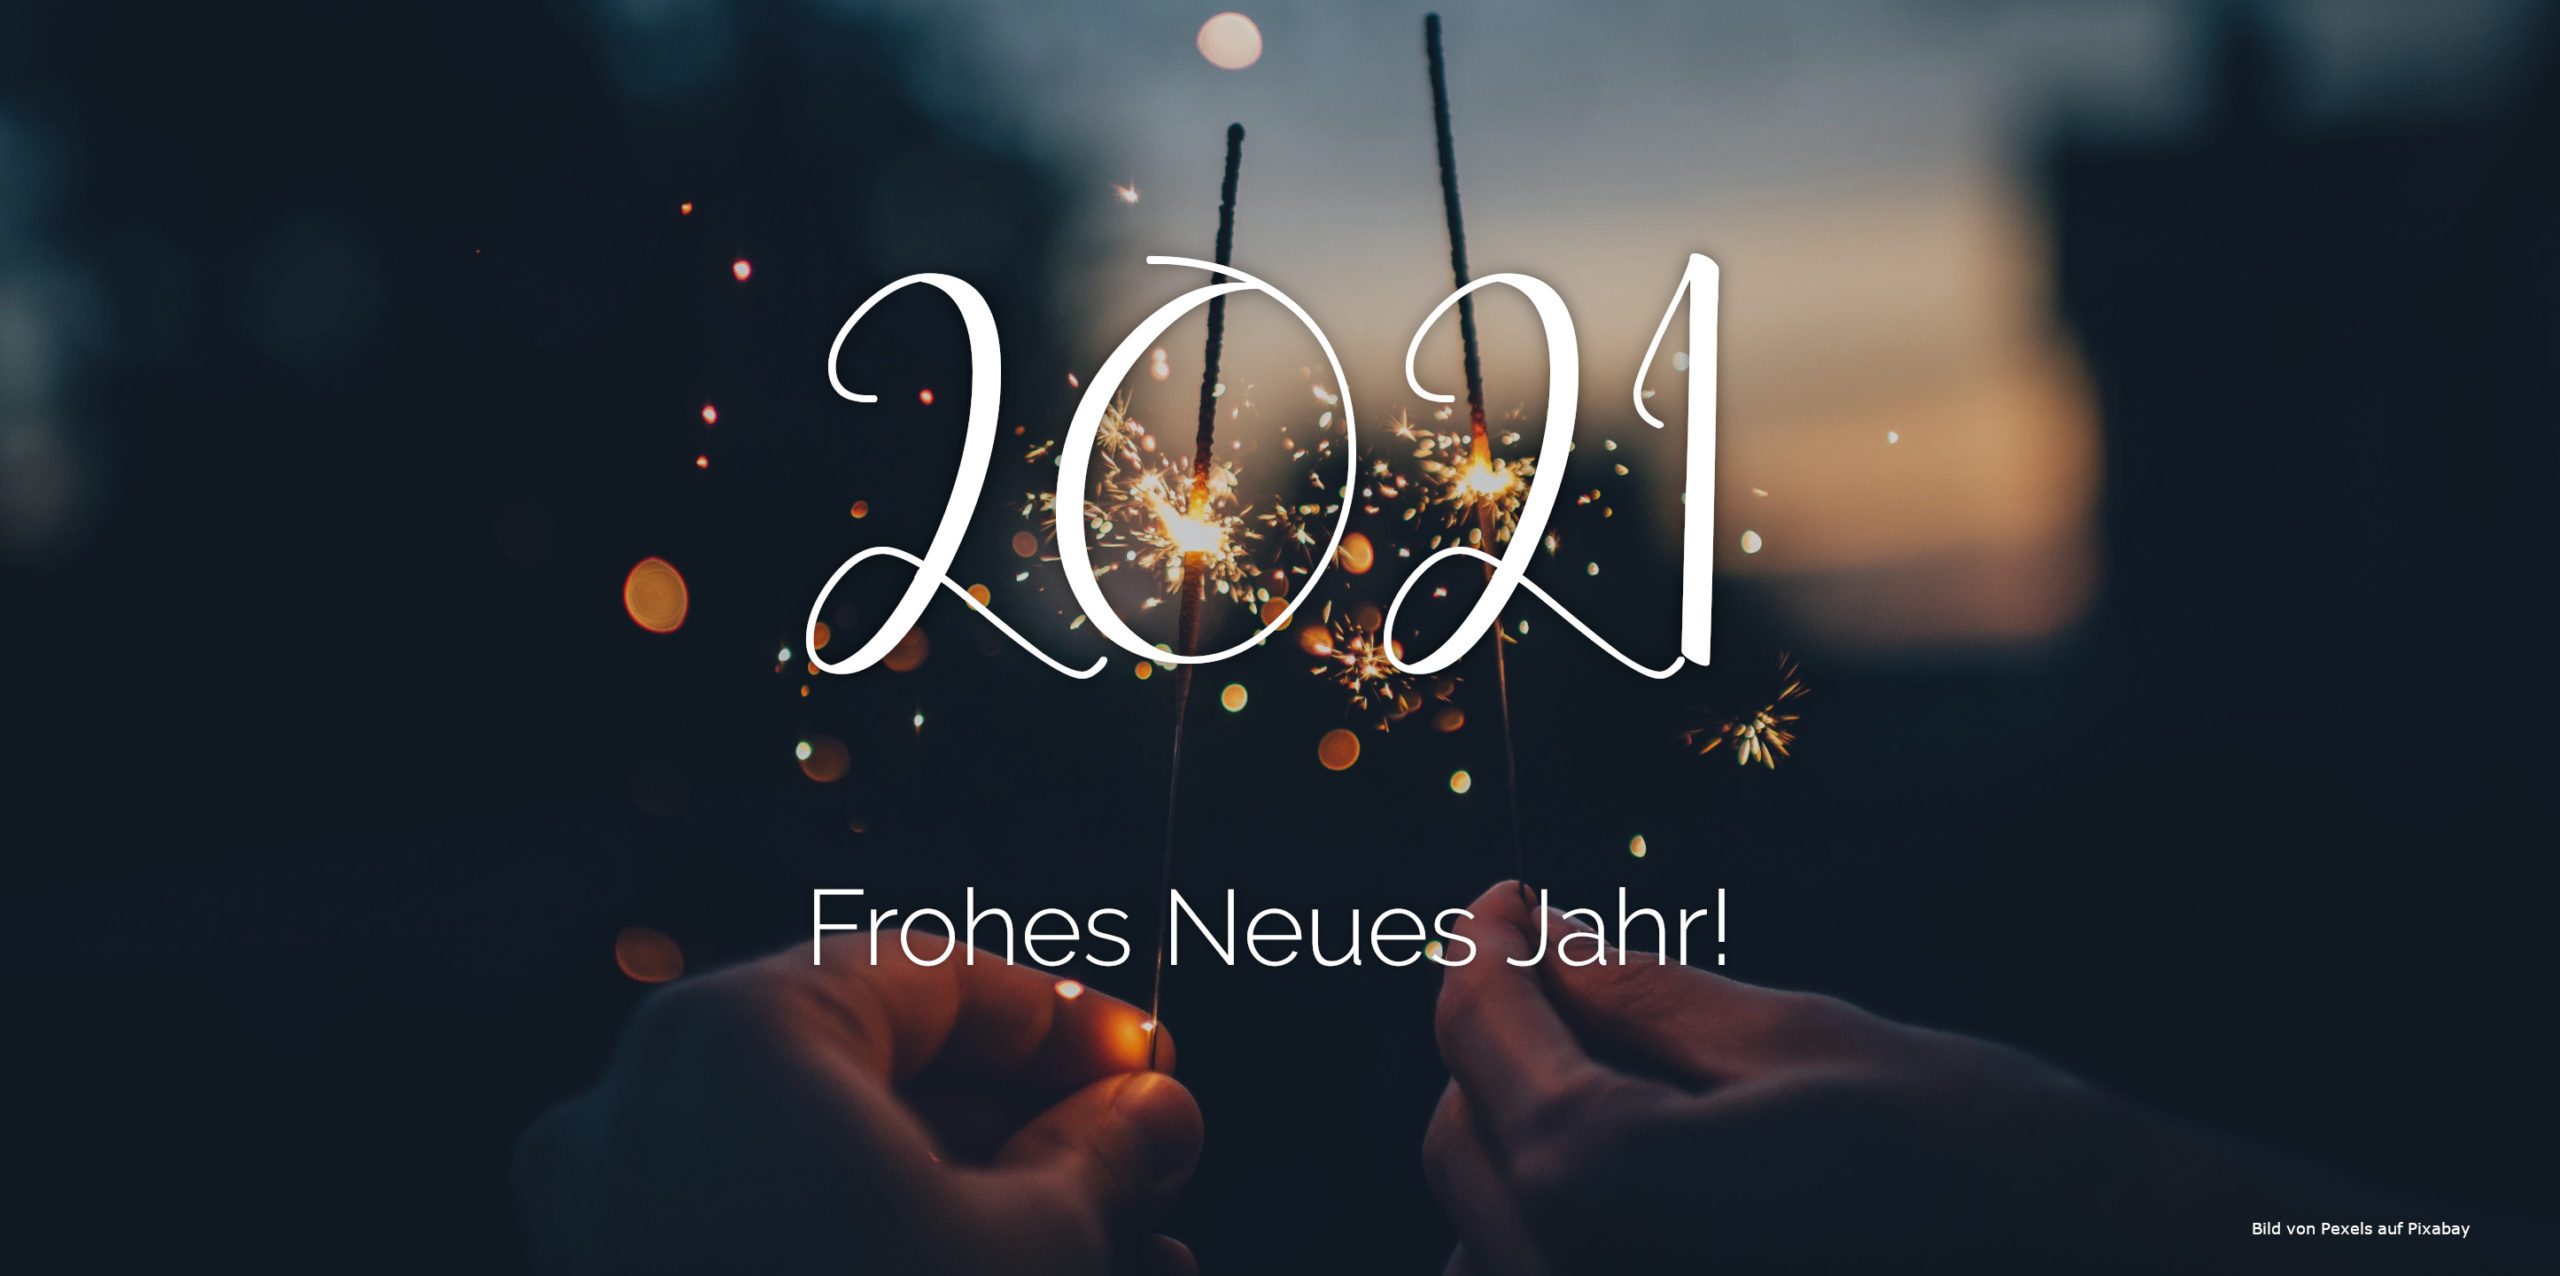 You are currently viewing Frohes Neues Jahr!